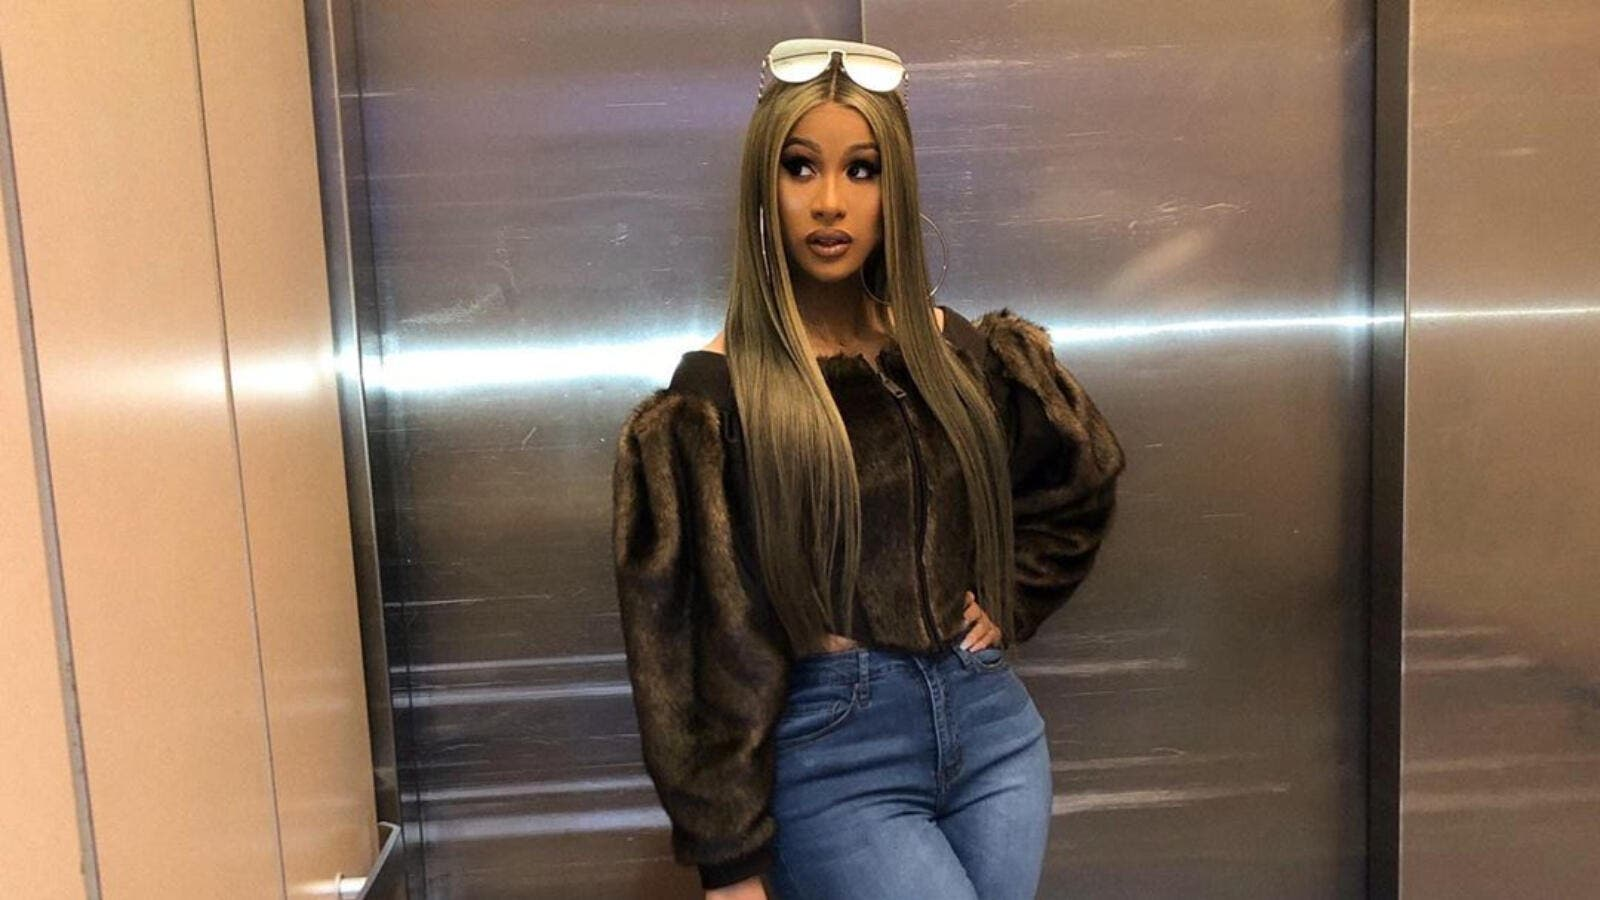 Cardi B reacts to being 'cancelled' in emotional video